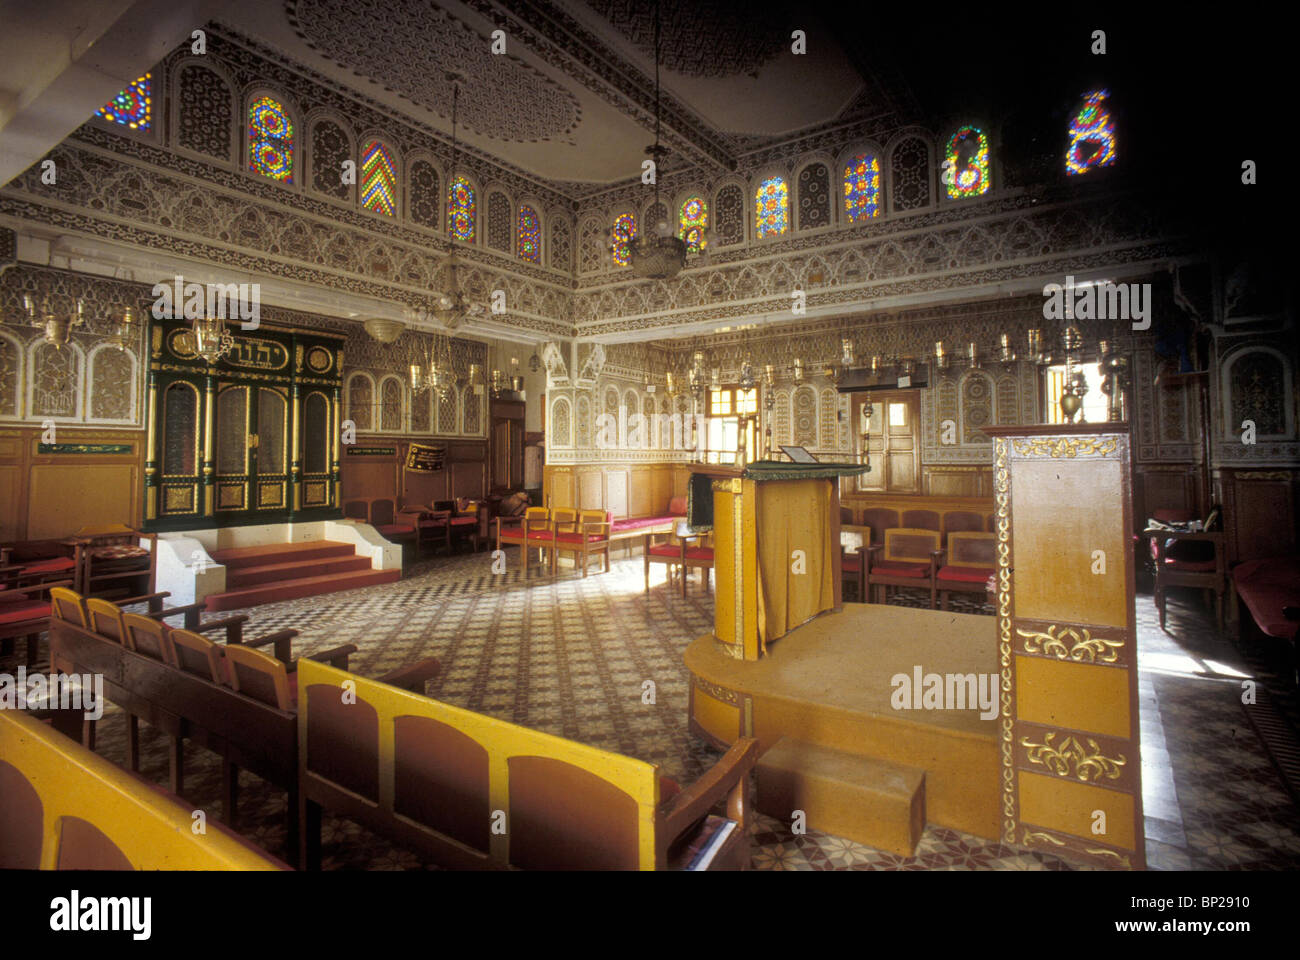 2469. FEZ (MOROCO) SYNAGOGUE, INTERIOR WITH THE ARK Stock Photo